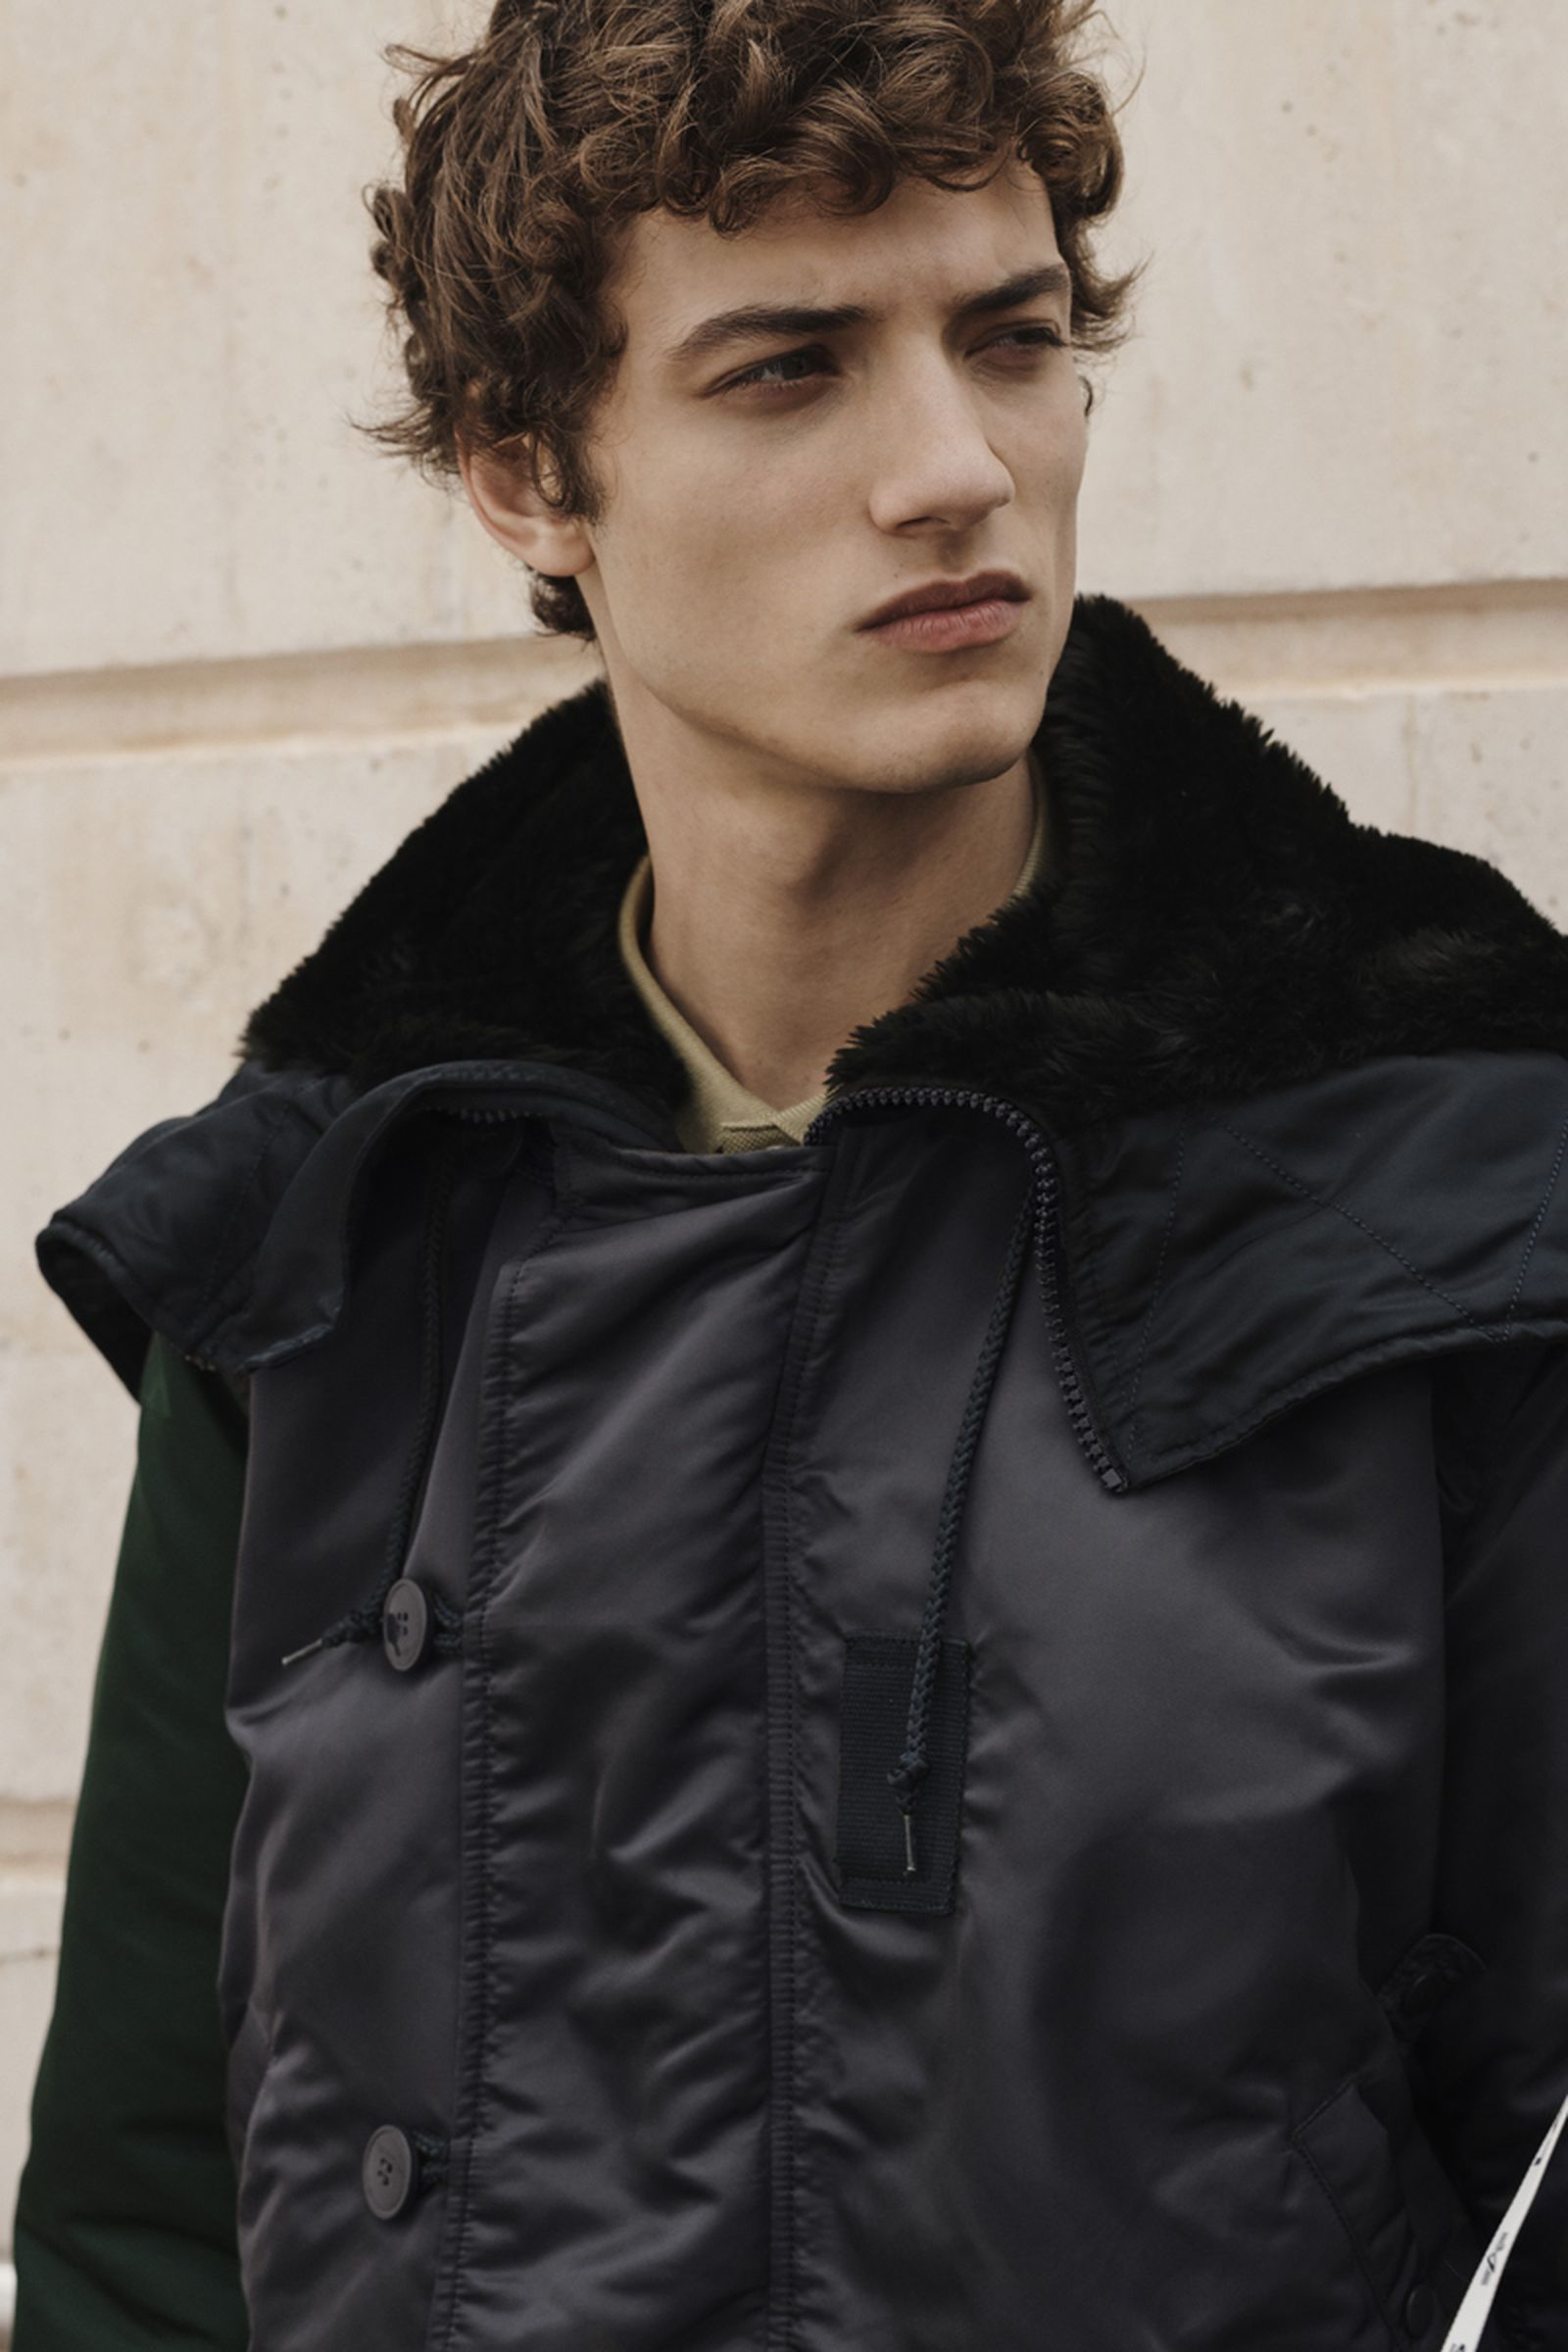 lacoste winter icons alpha industries gloverall k-way pyrenex